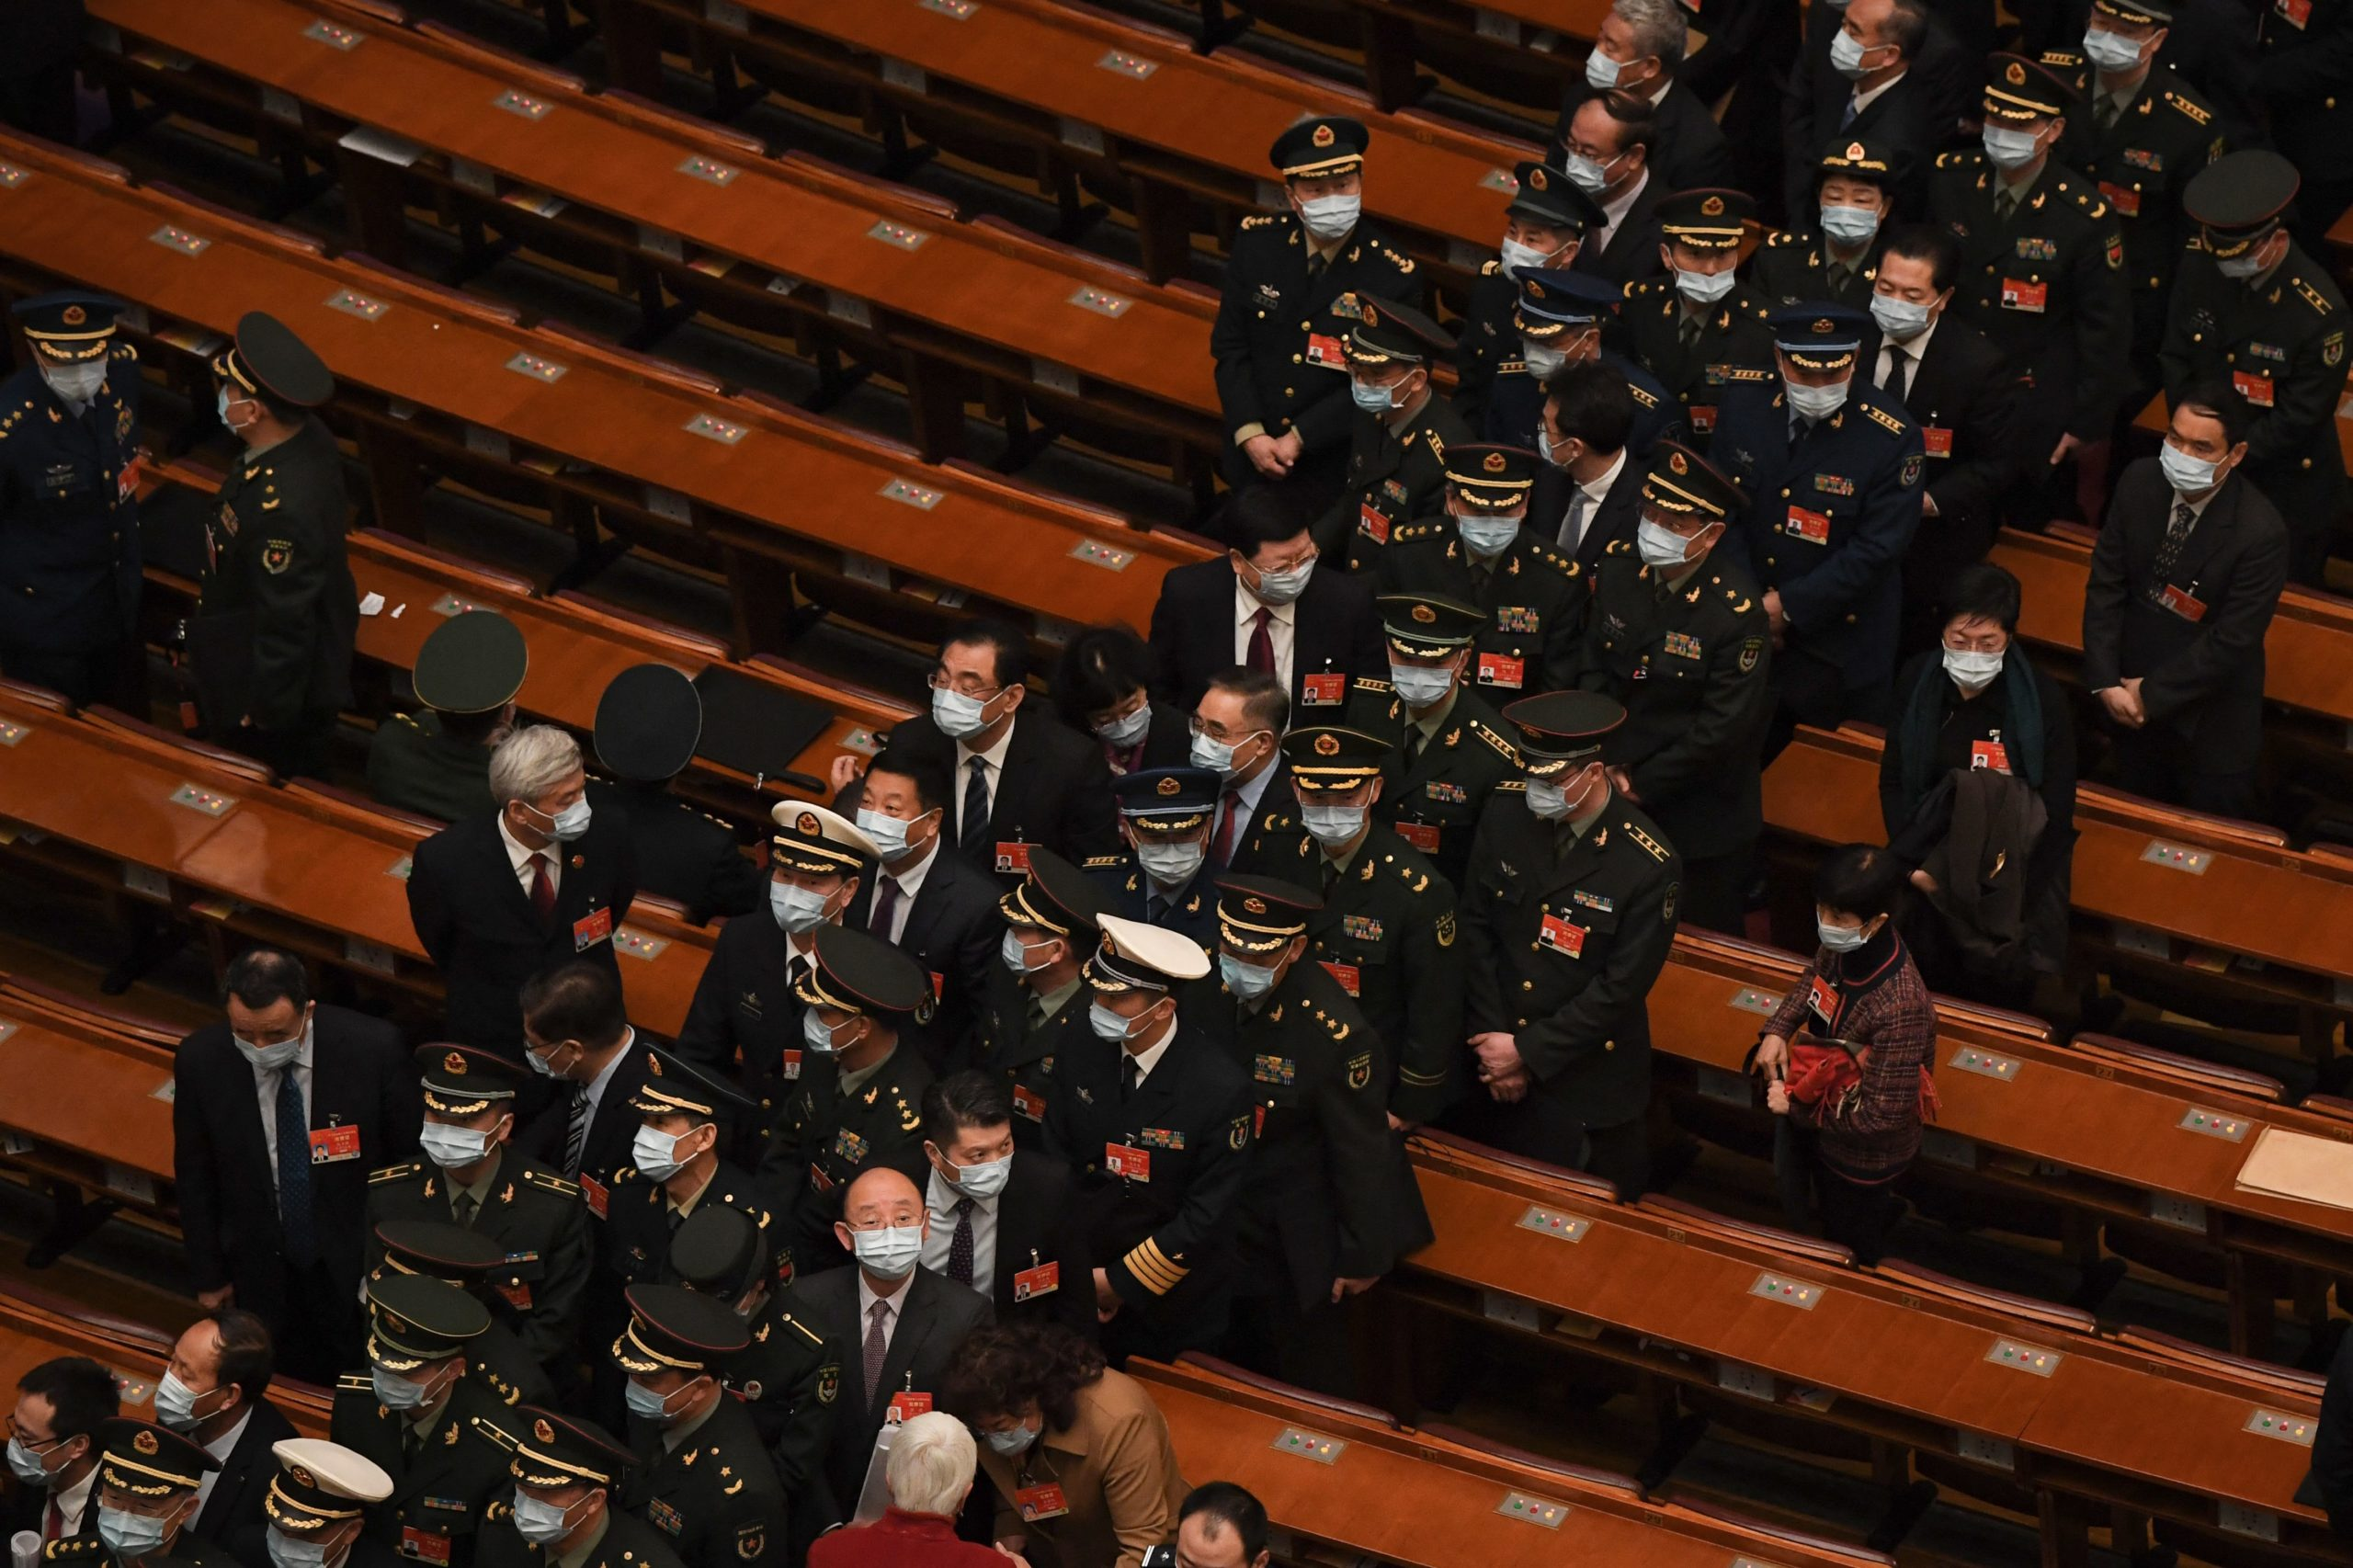 Military delegates leave after the second plenary session of the National Peoples Congress (NPC) at the Great Hall of the People in Beijing on March 8, 2021. (Photo by Noel CELIS / AFP) (Photo by NOEL CELIS/AFP via Getty Images)